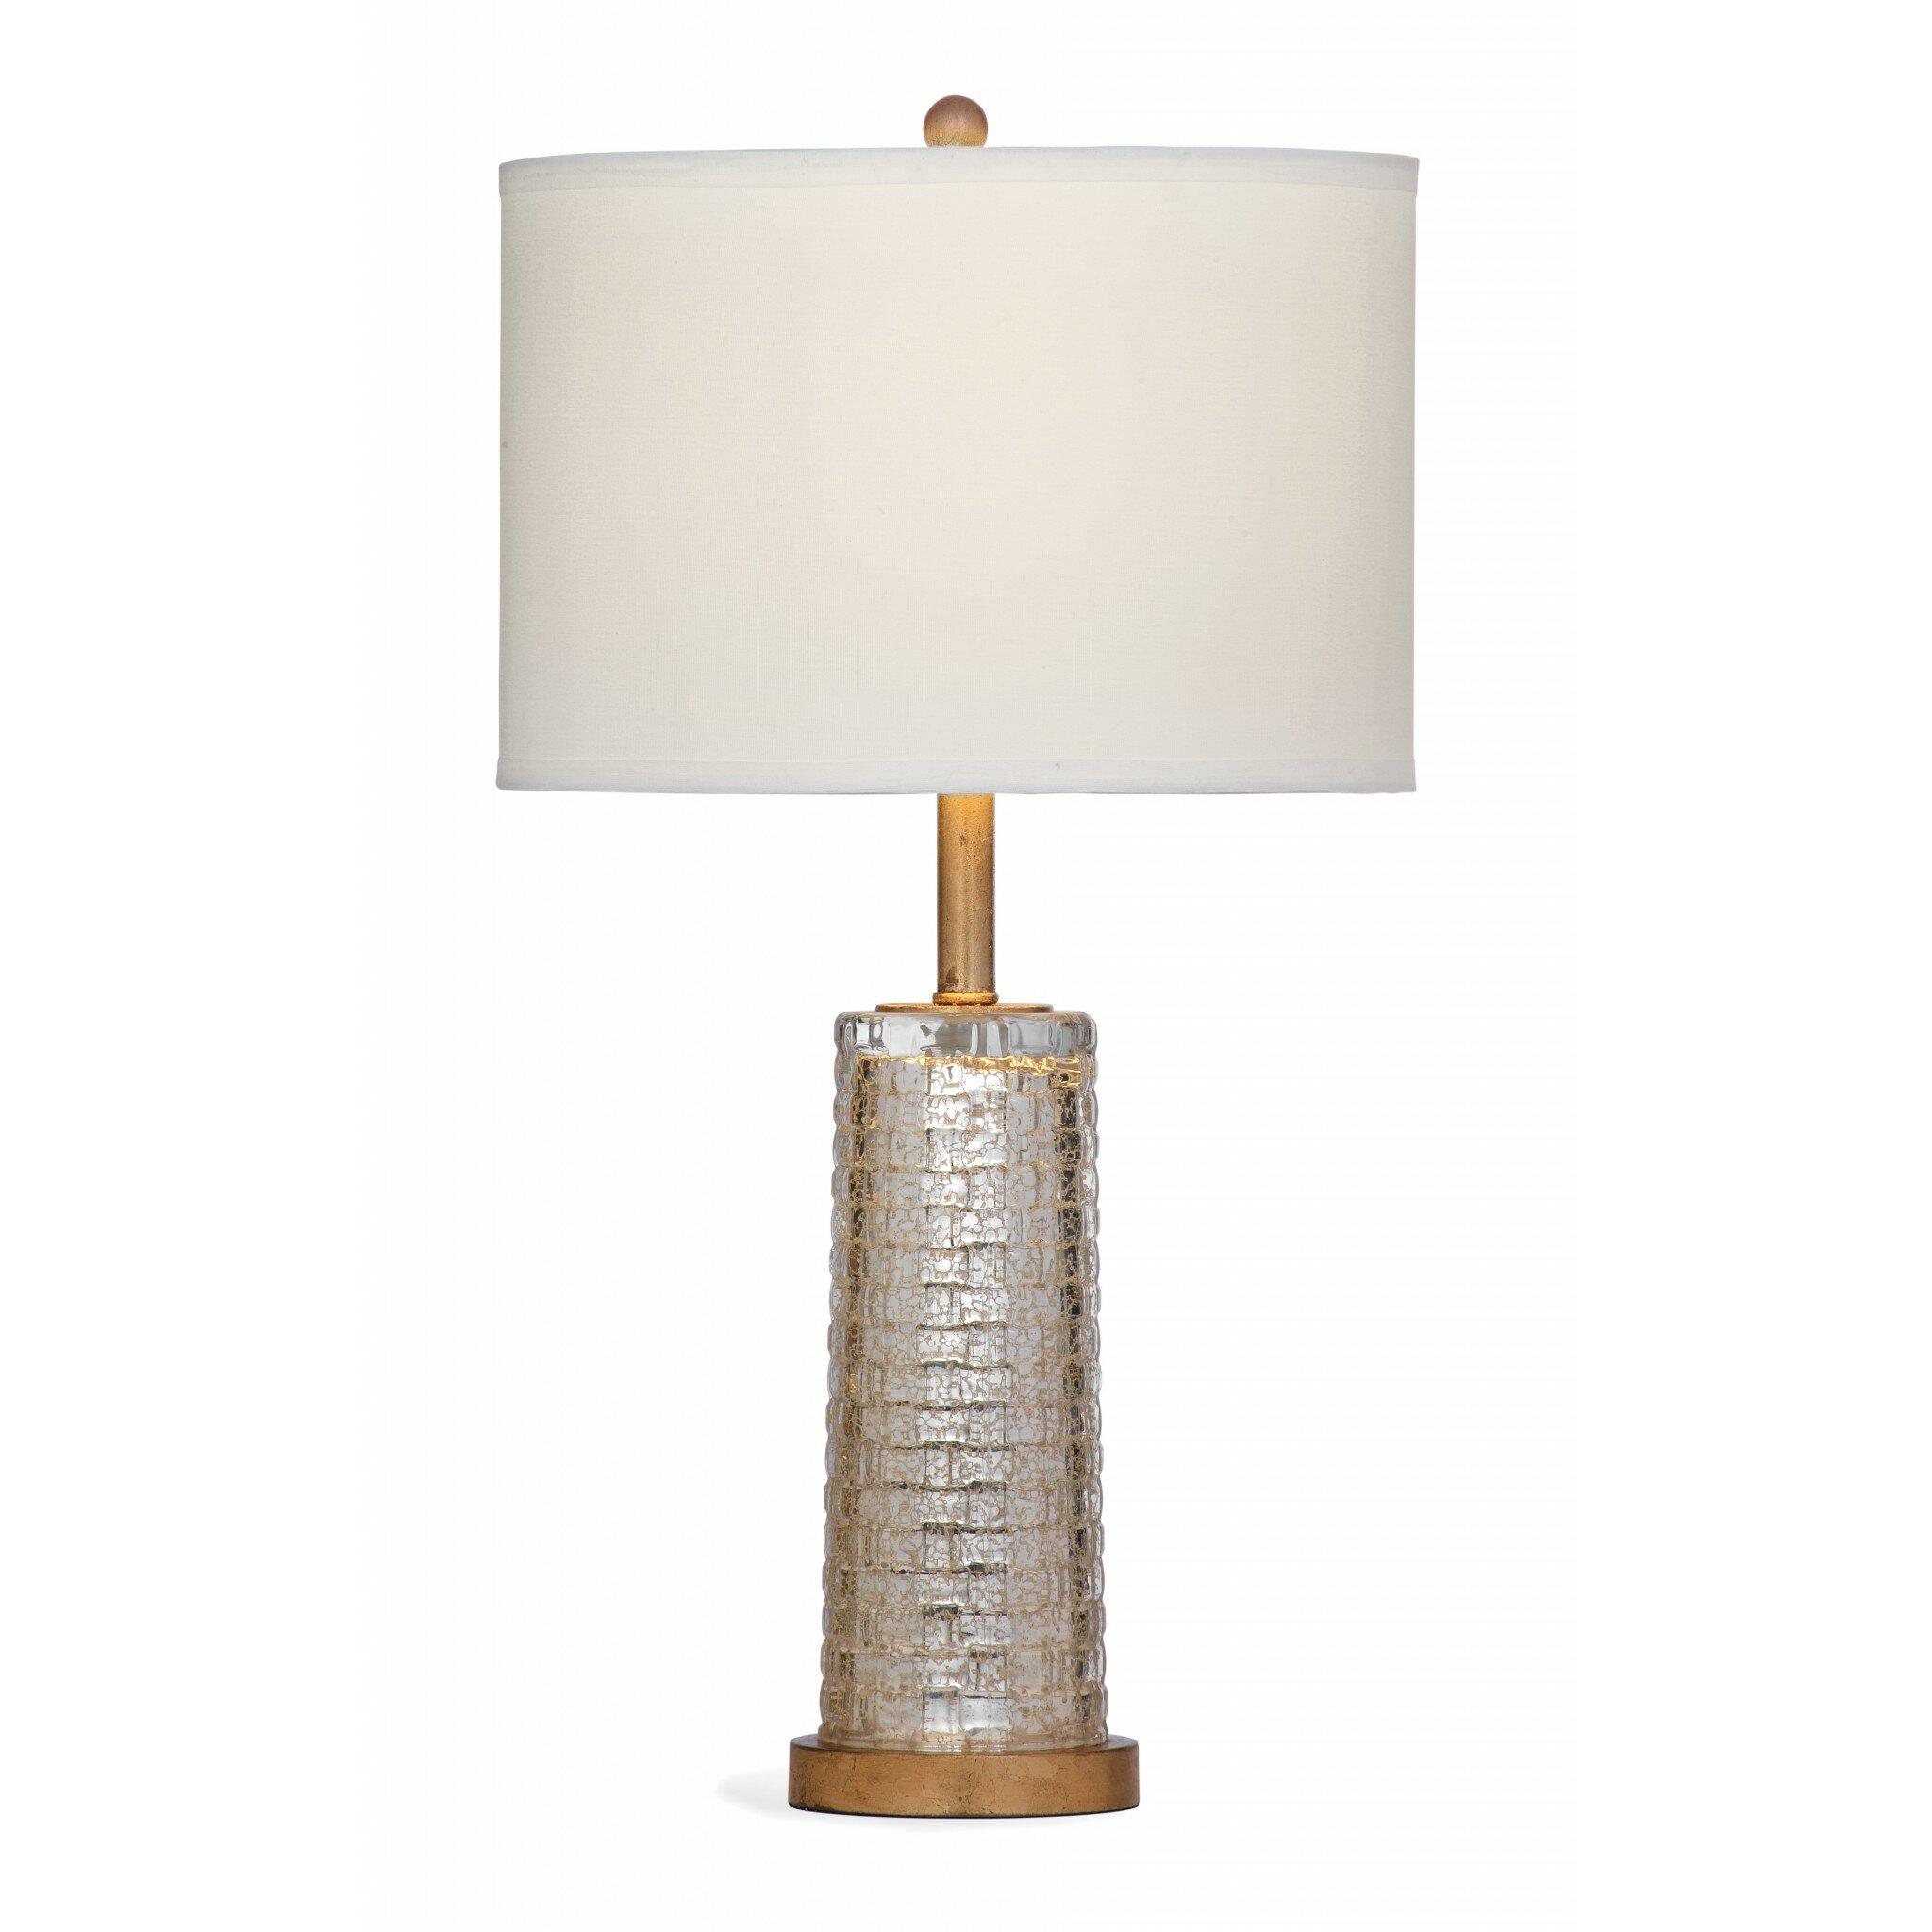 Mercer41 Aronson 29quot Table Lamp amp Reviews Wayfair : Mercer41 Aronson 29 Table Lamp from www.wayfair.com size 2048 x 2048 jpeg 174kB